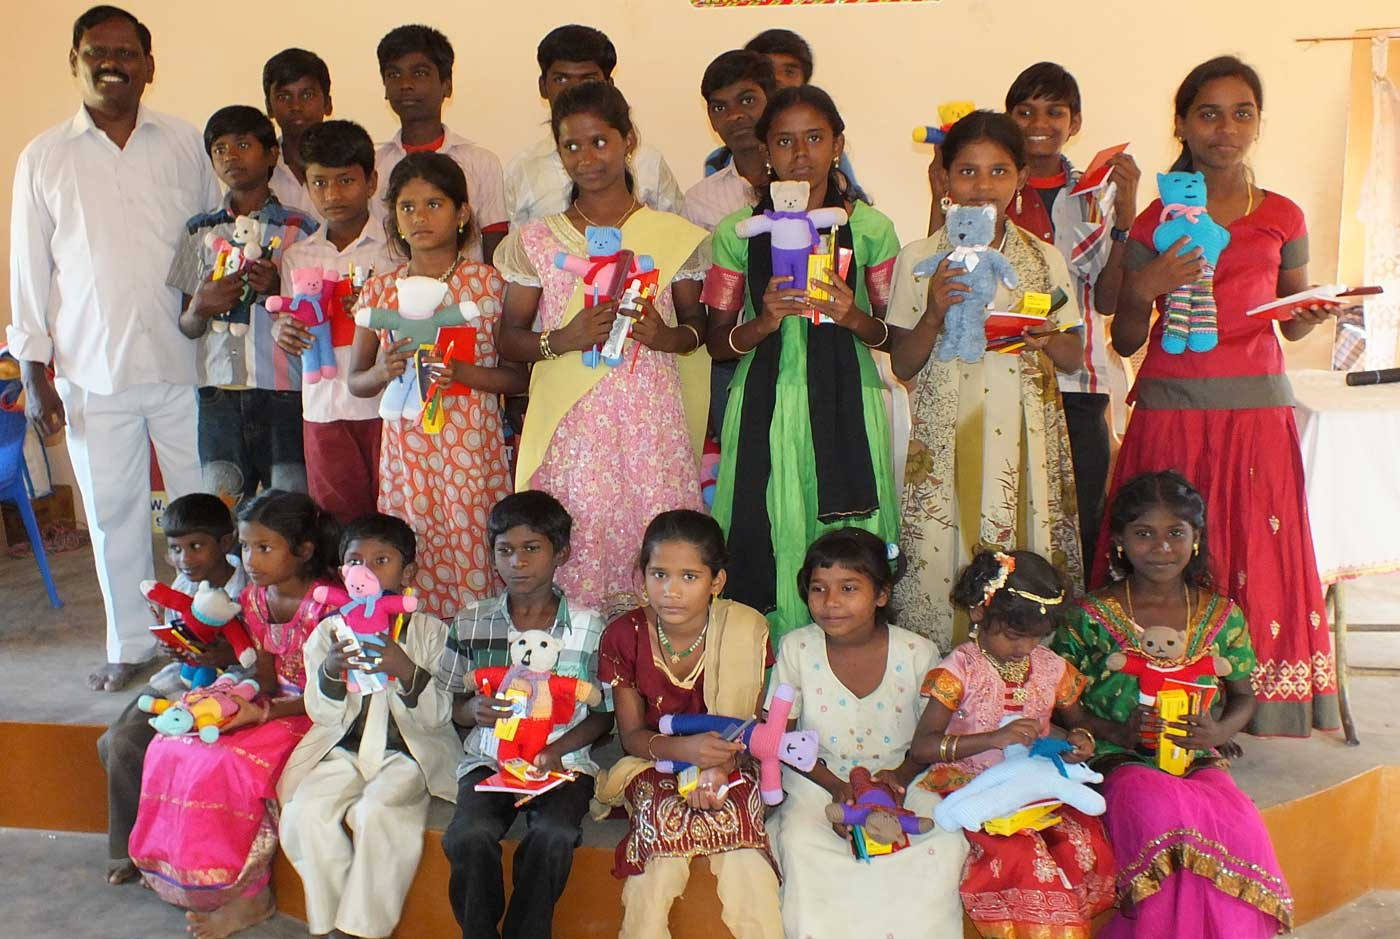 Orphans with gifts